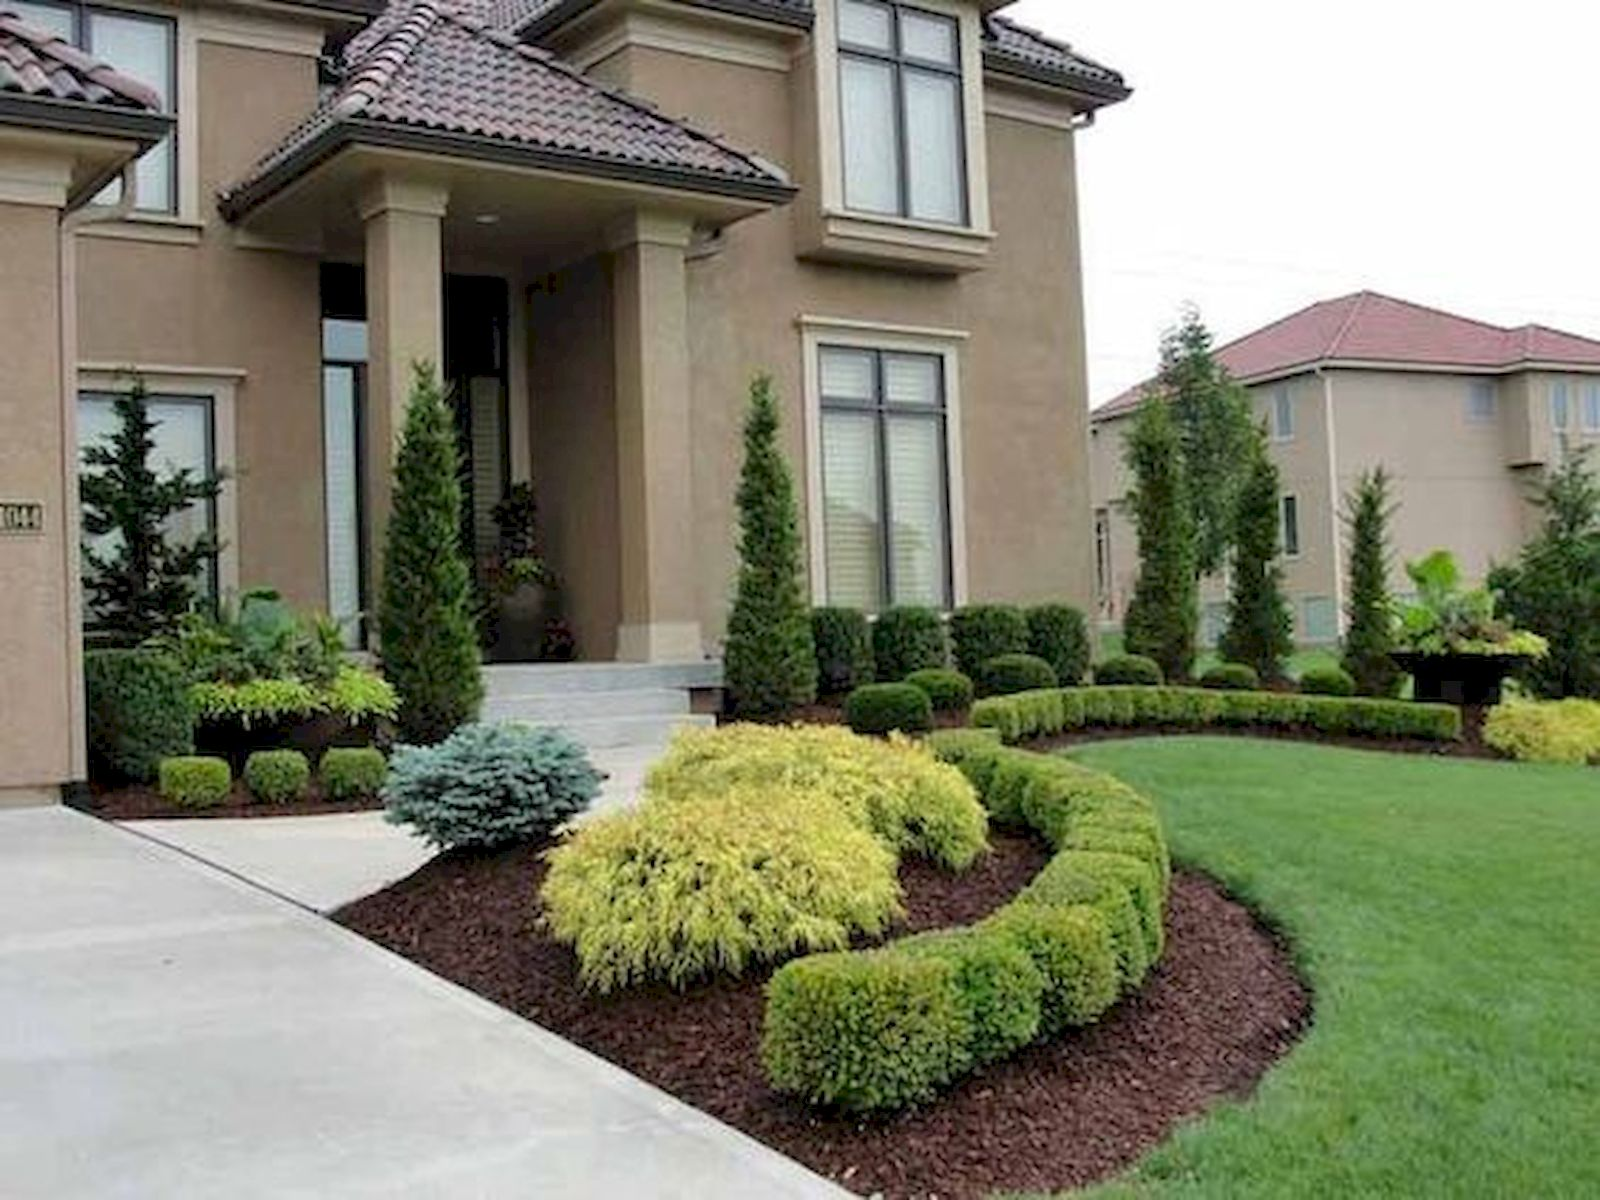 50 Beautiful Side Yard Garden Landscaping Ideas for Your House (23)